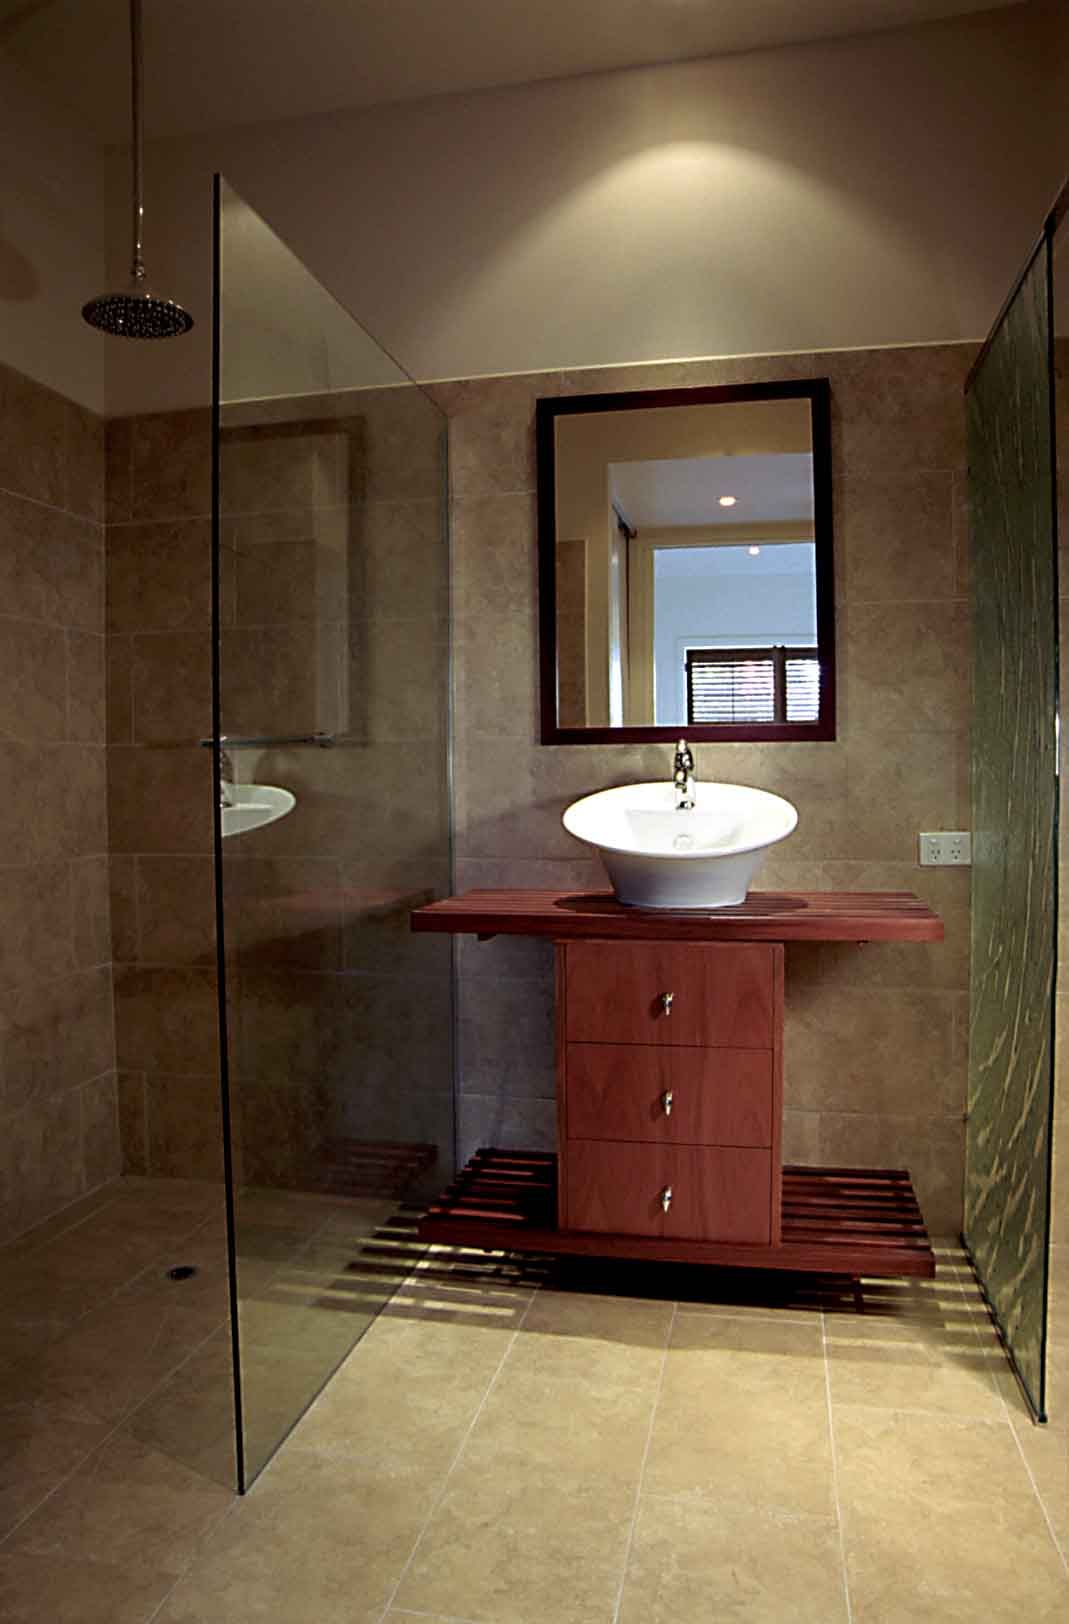 Wet room design for small bathrooms small ensuite for Small toilet and bath design